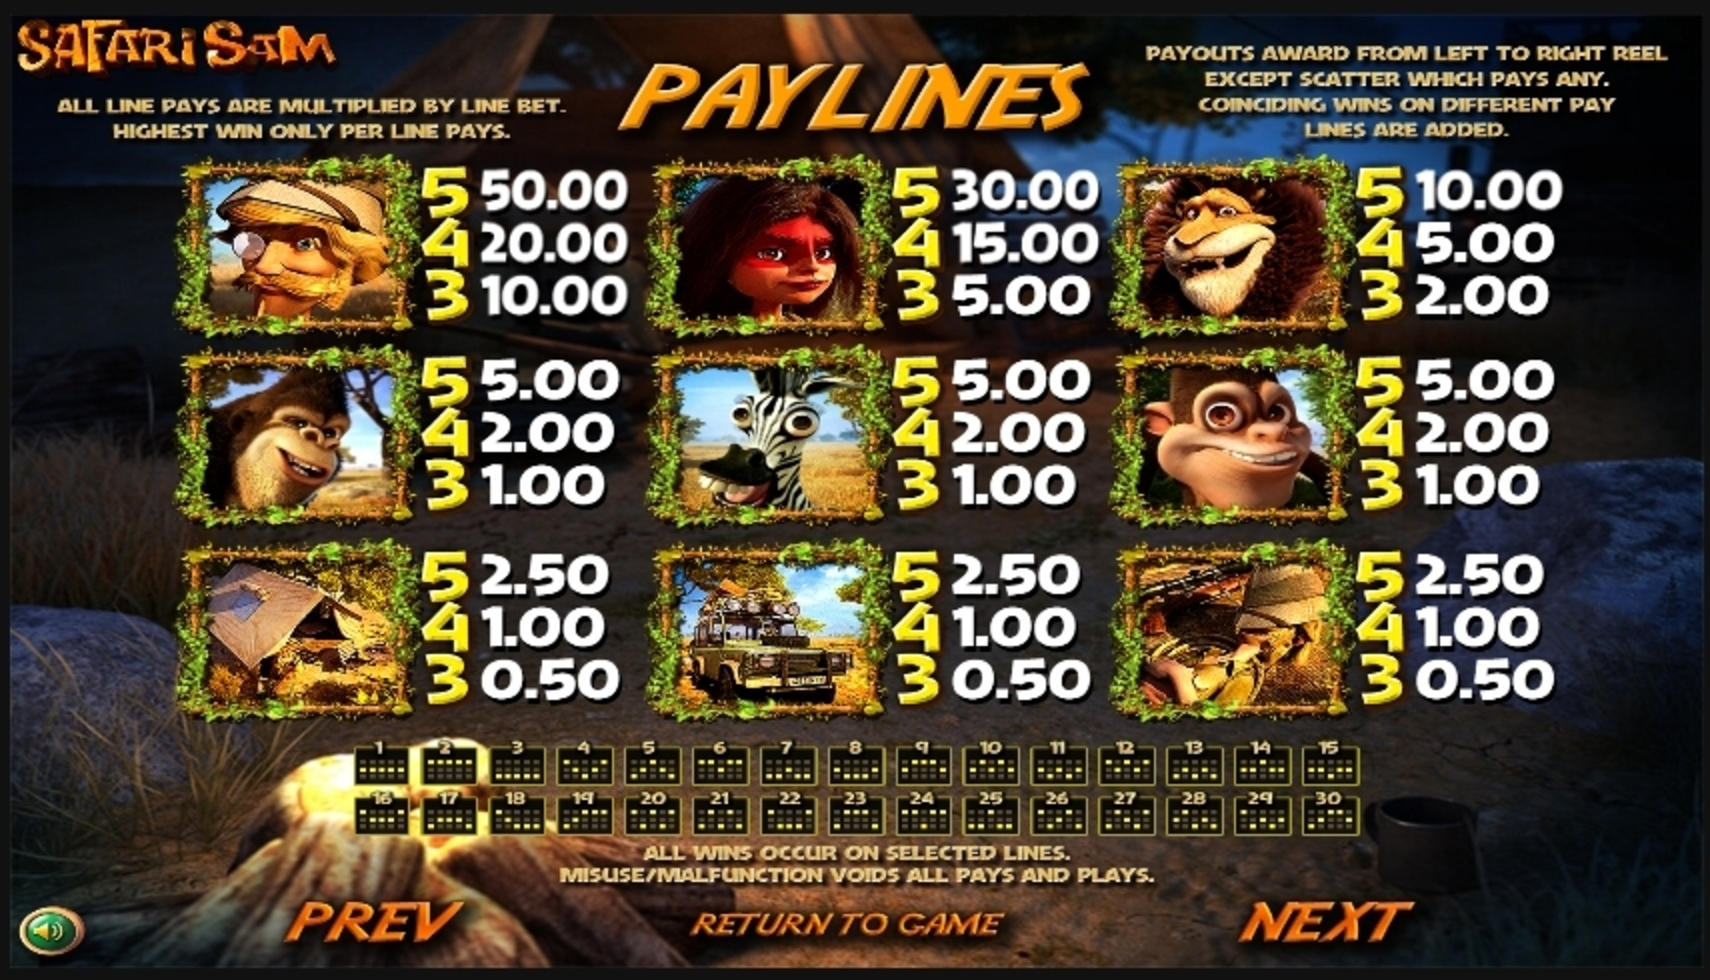 Info of Safari Sam Slot Game by Betsoft